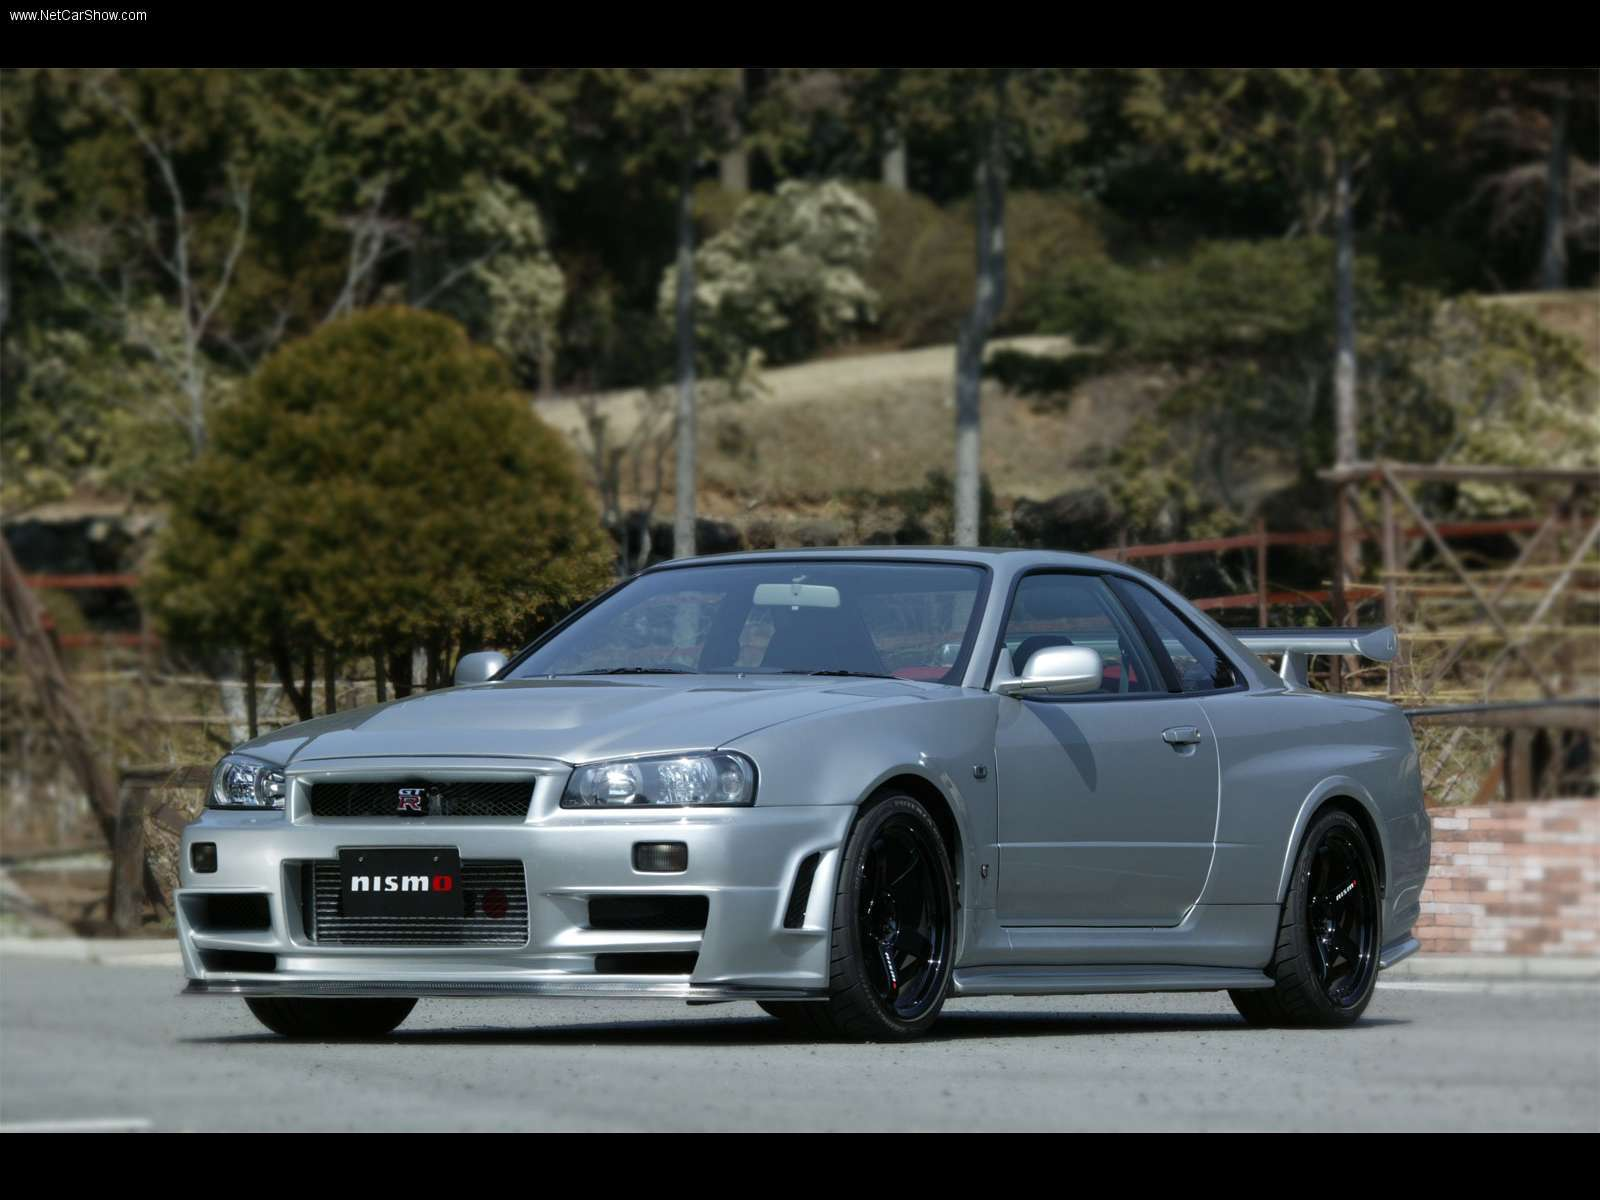 Nissan Skyline GT-R Coupe 2002